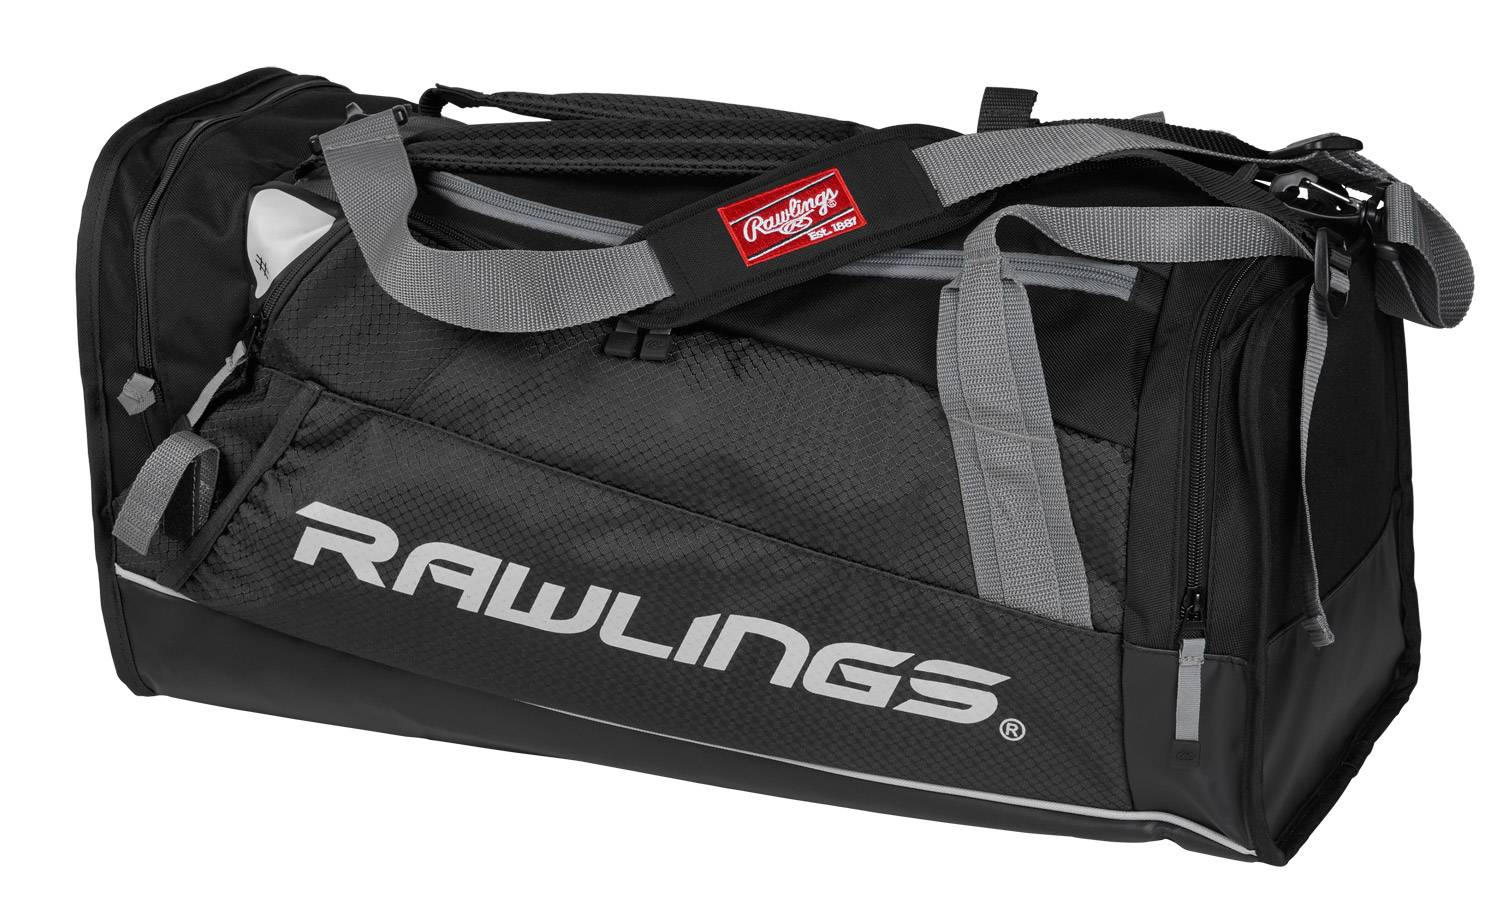 Rawlings Hybrid Backpack Duffel Baseball Equipment Bag New